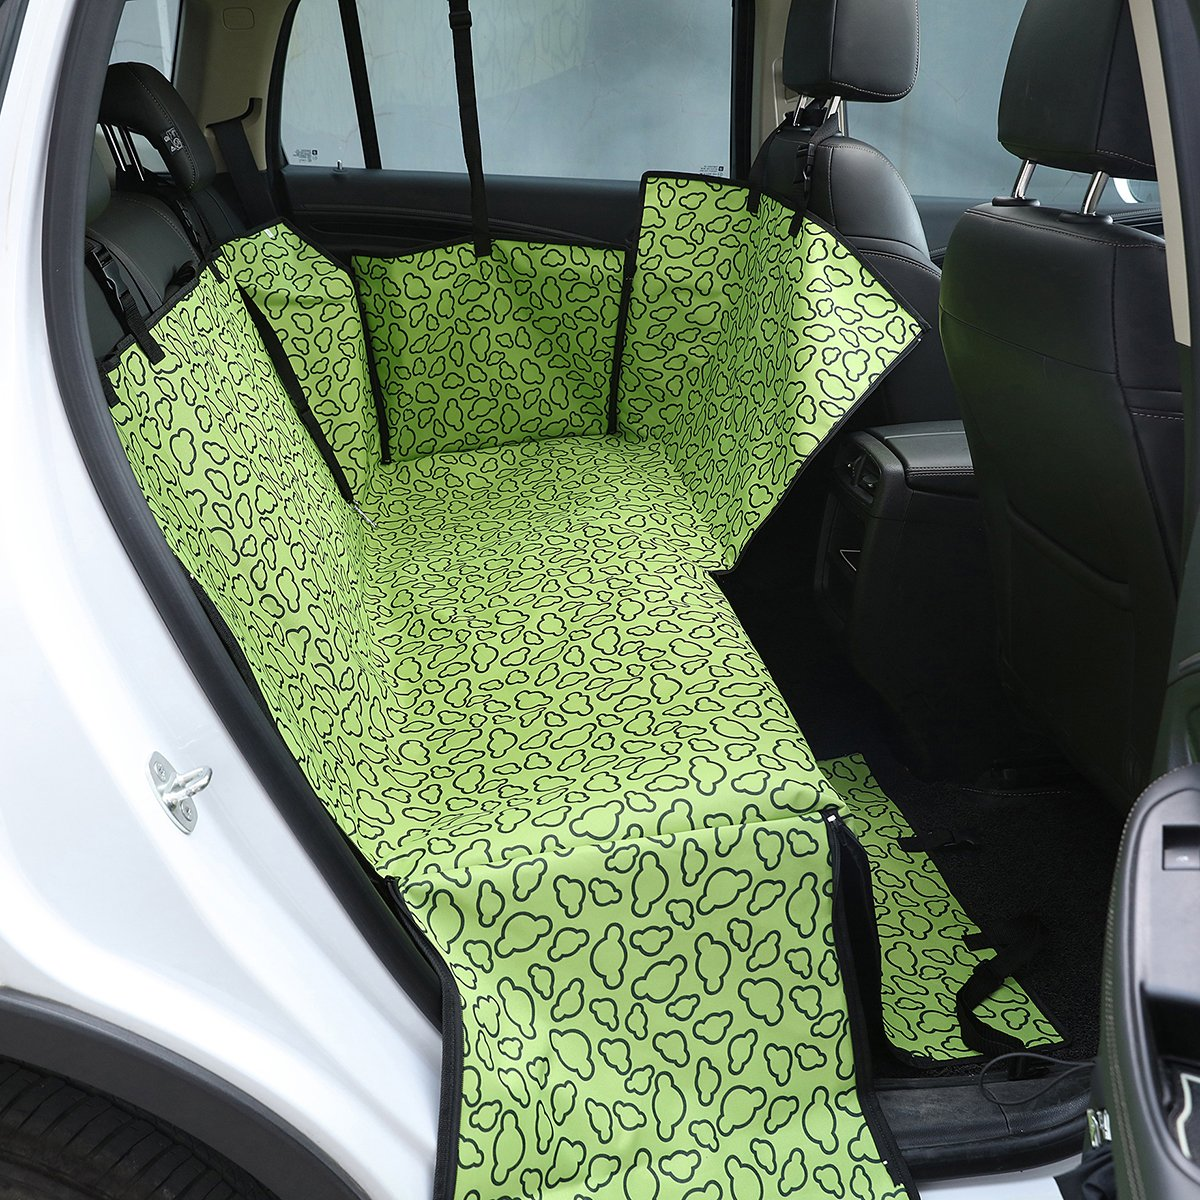 PETCUTE Luxury Dog Car Seat Cover Pets Hammock Cover Cat Waterproof Durable Backseat Double Cover with Side Flaps Green